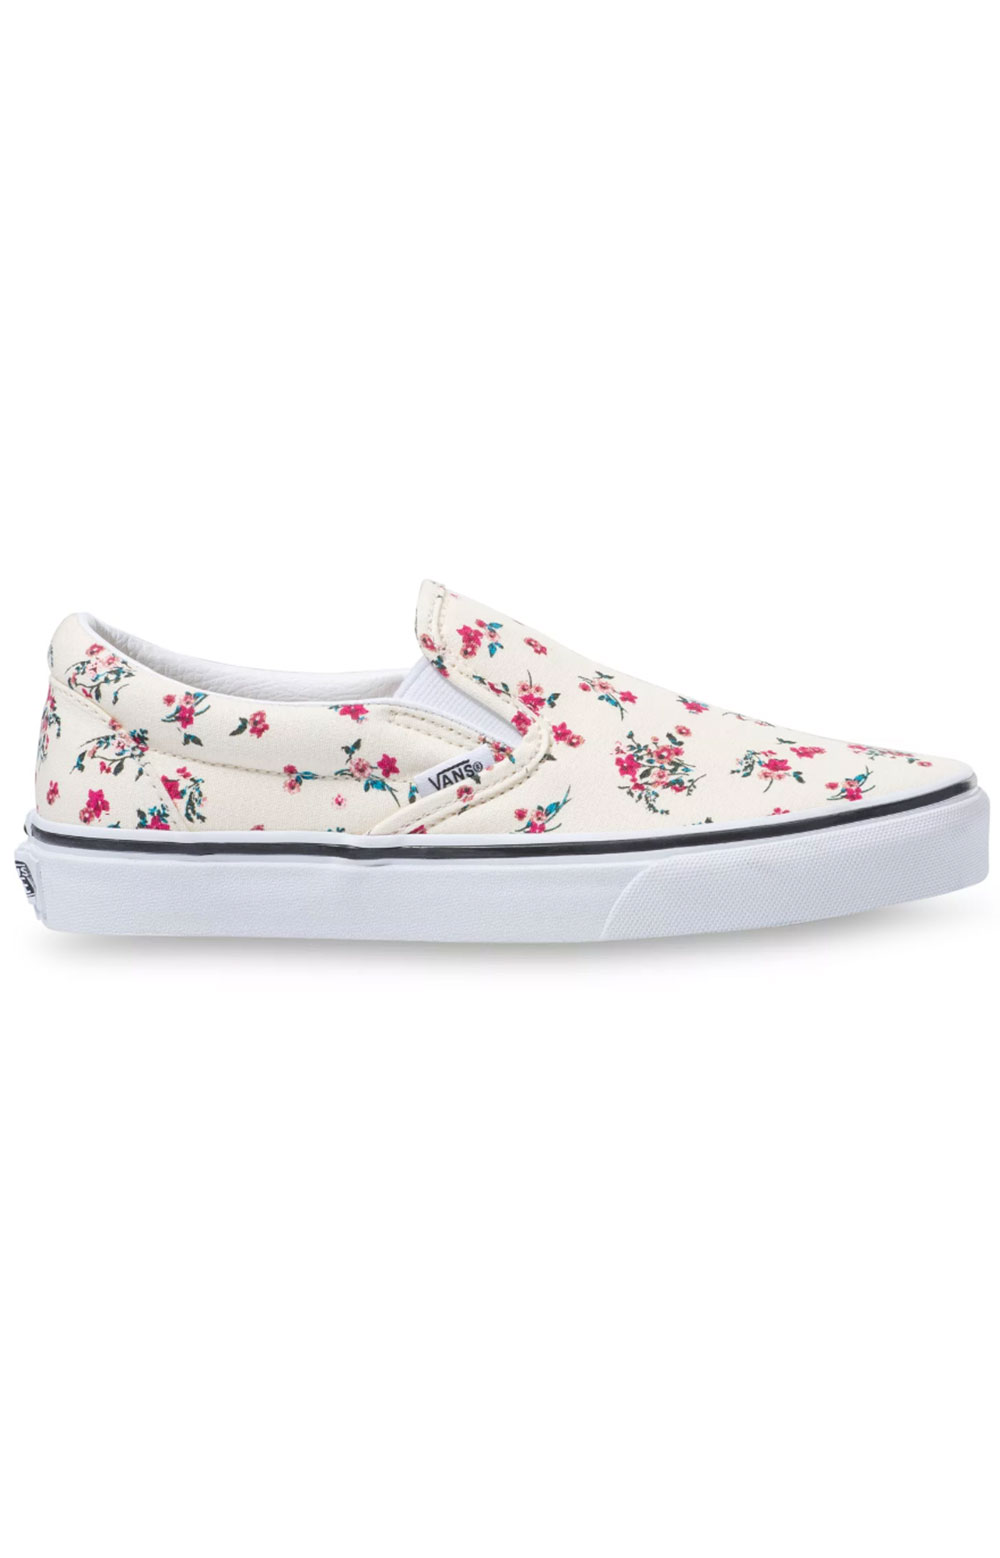 (U3816Z) Ditsy Floral Classic Slip-On Shoes - Classic White/True White